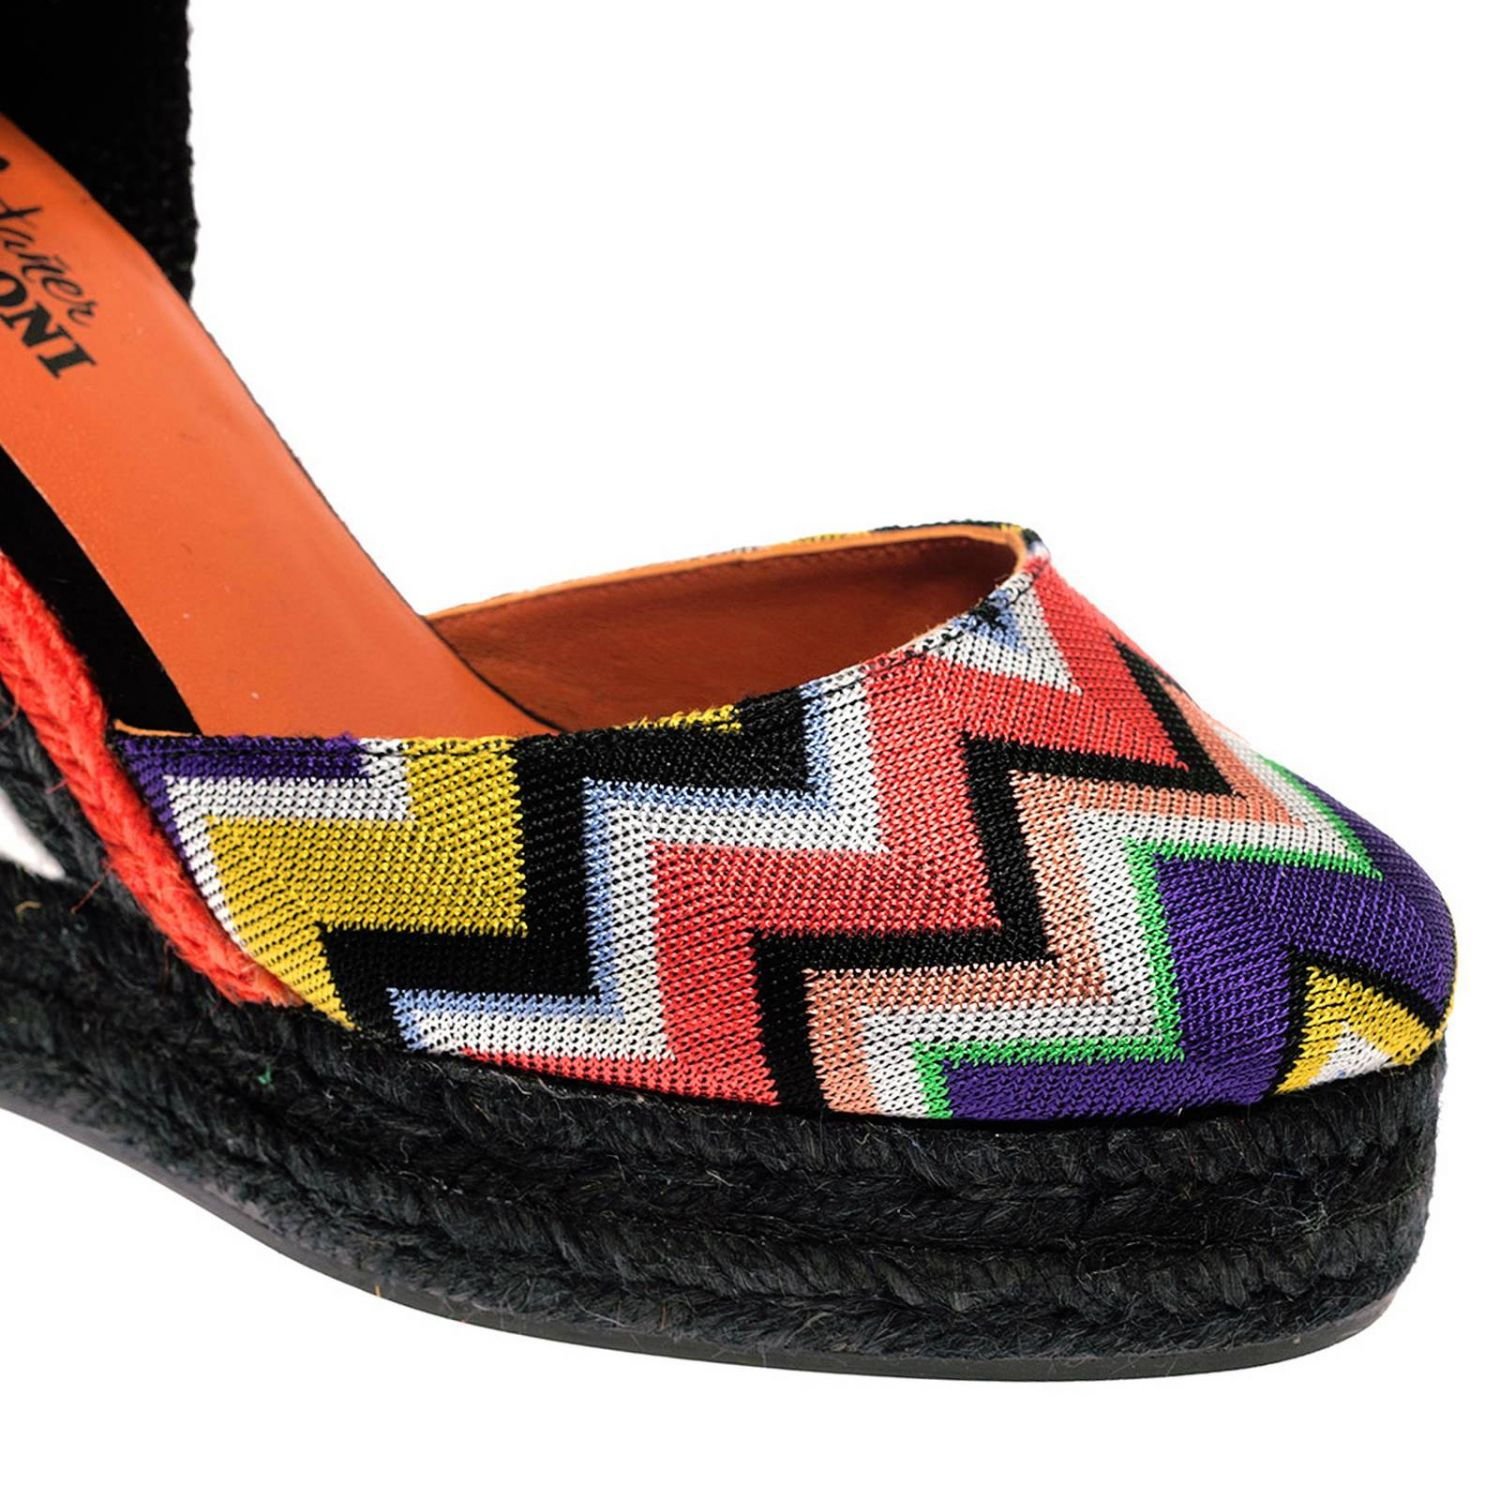 Shoes women Castaner multicolor 3